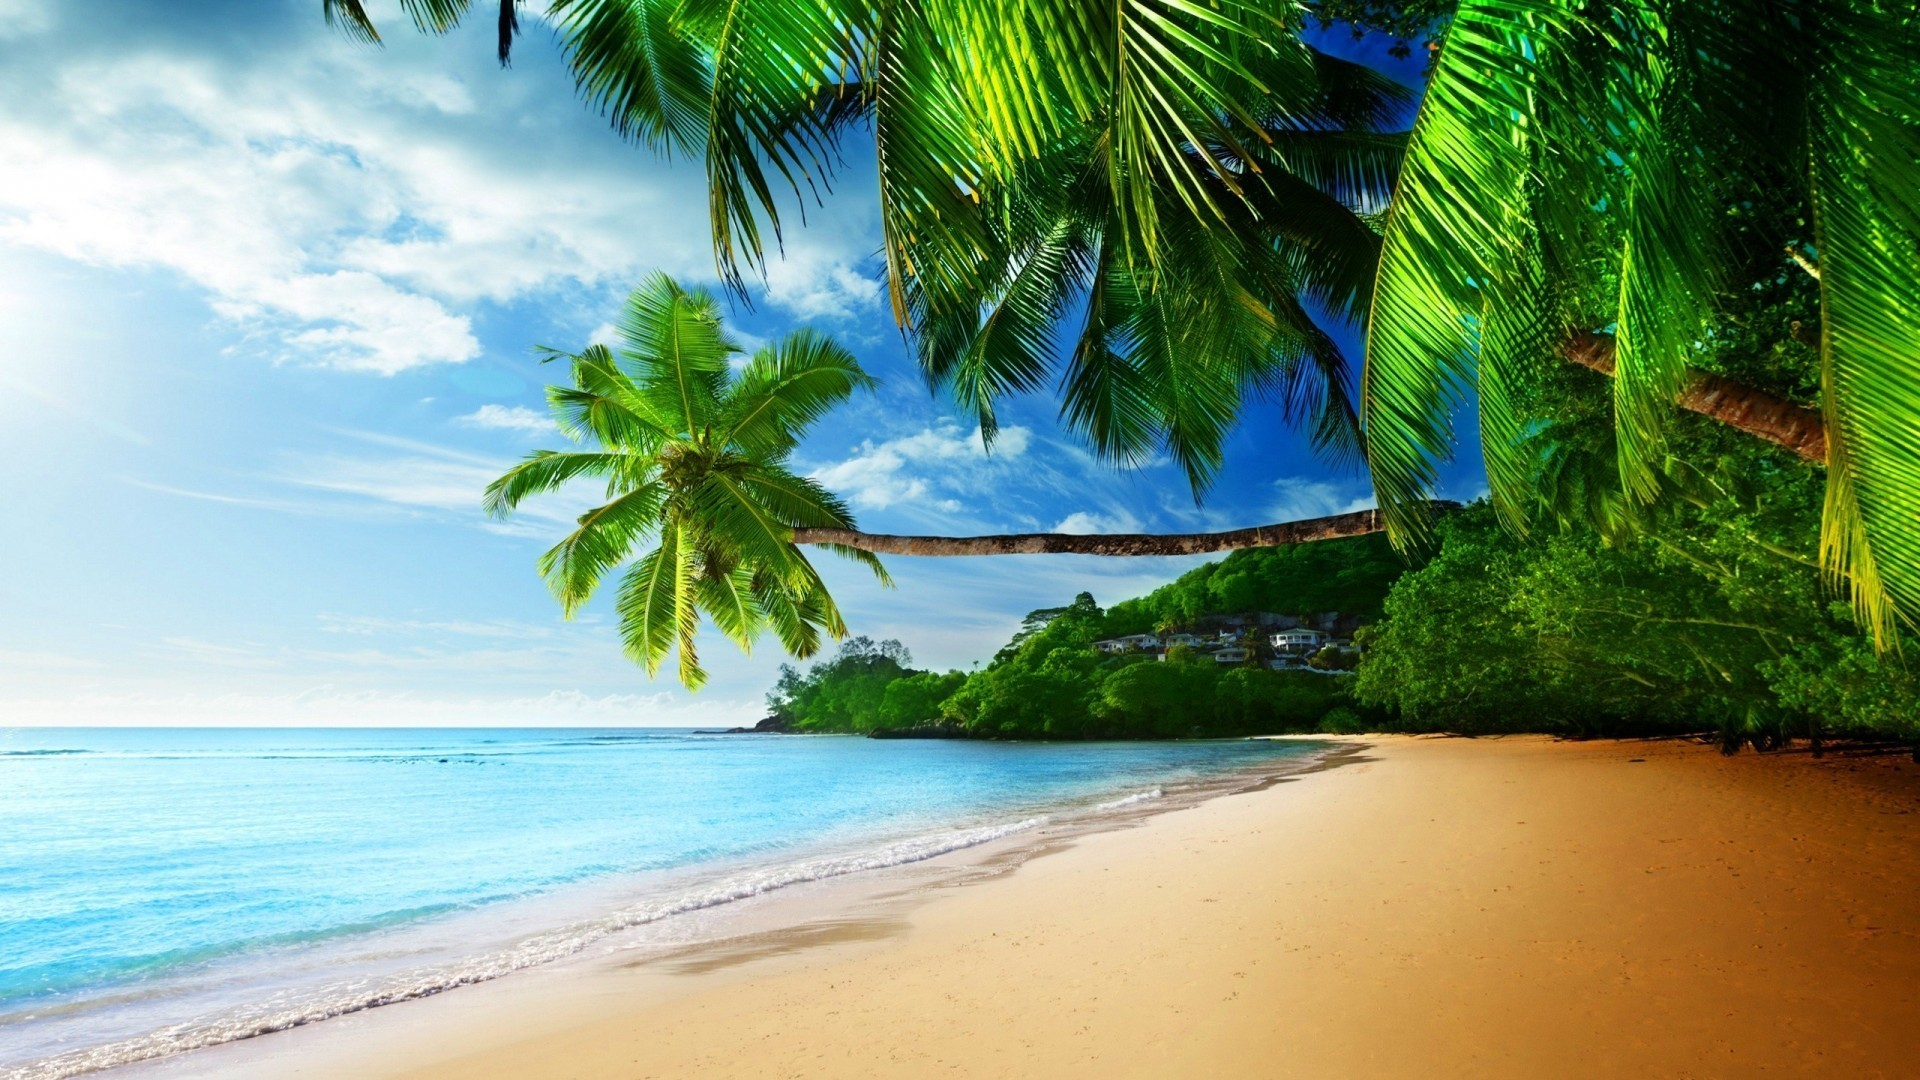 https://wallpapertag.com/wallpaper/full/d/6/3/849939-tropical-wallpaper-desktop-1920x1080-for-1080p.jpg